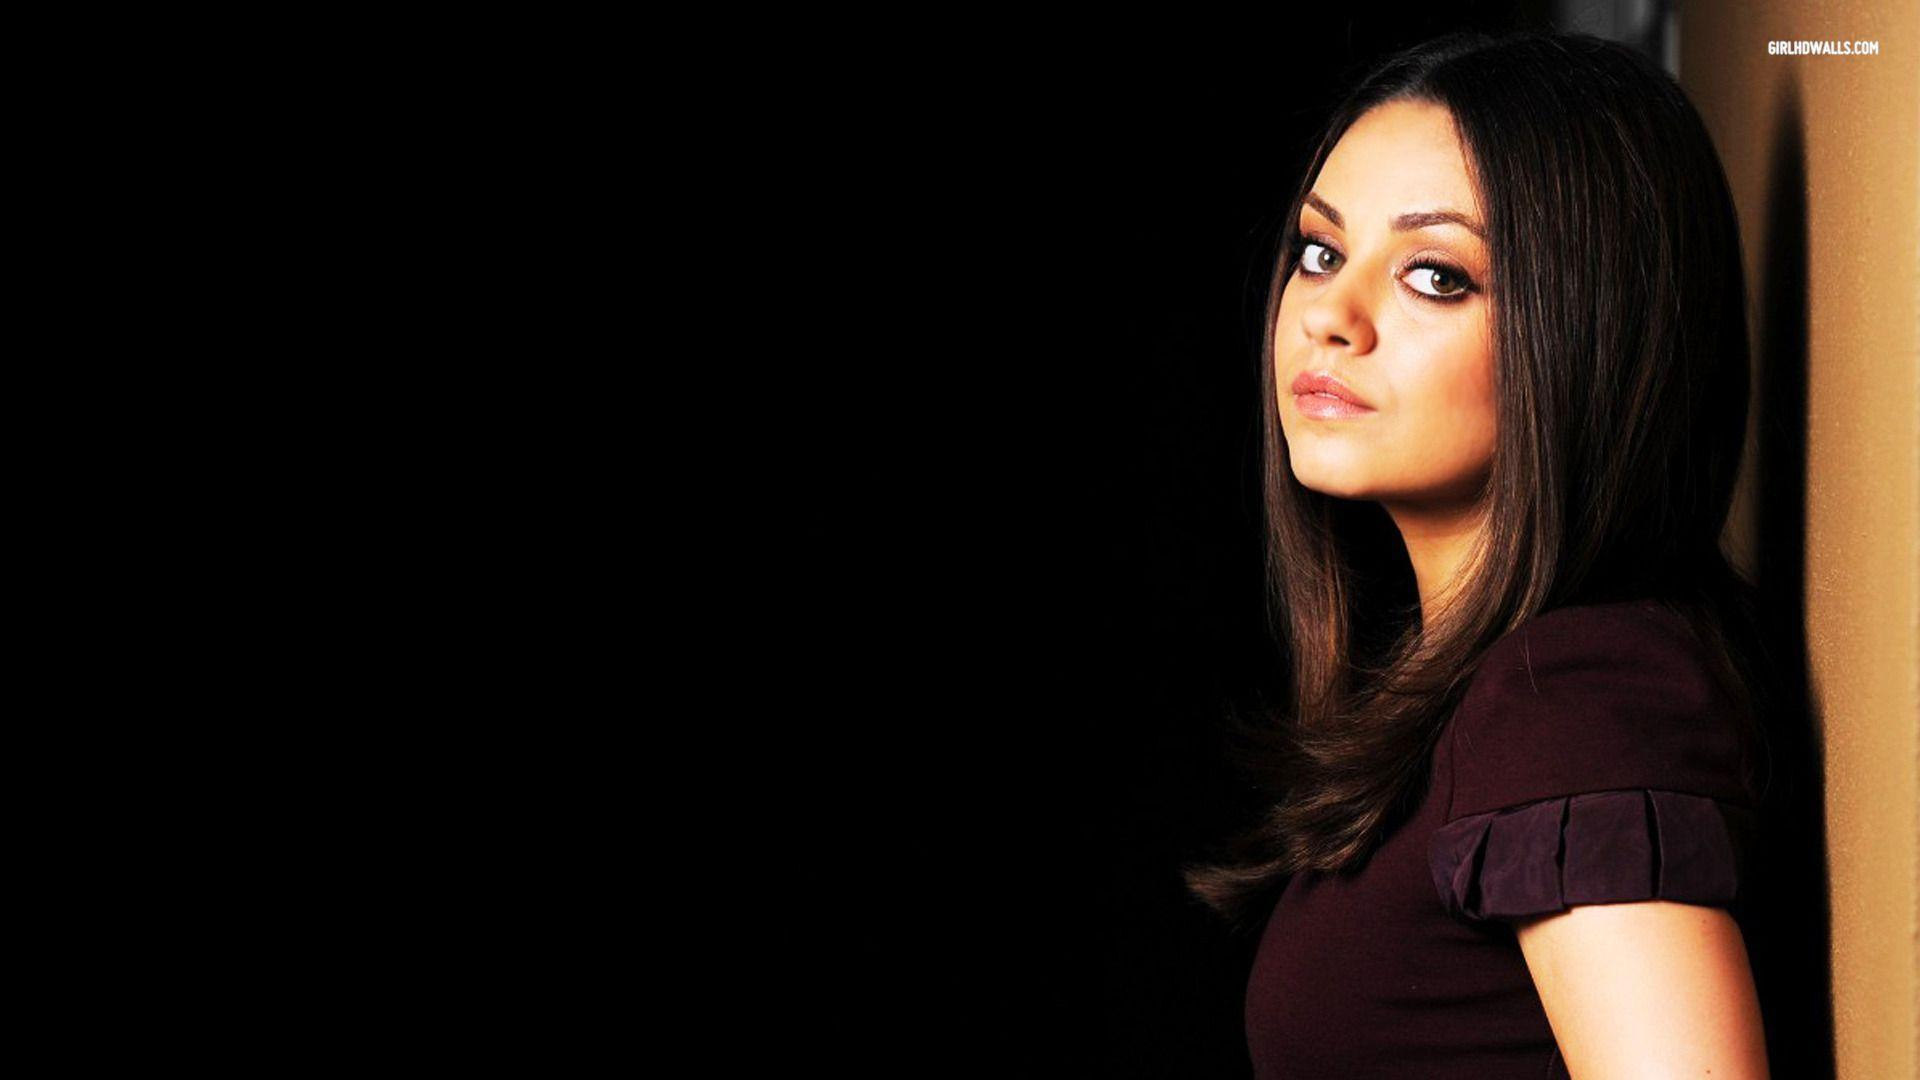 mila kunis wallpapers wallpaper cave. Black Bedroom Furniture Sets. Home Design Ideas